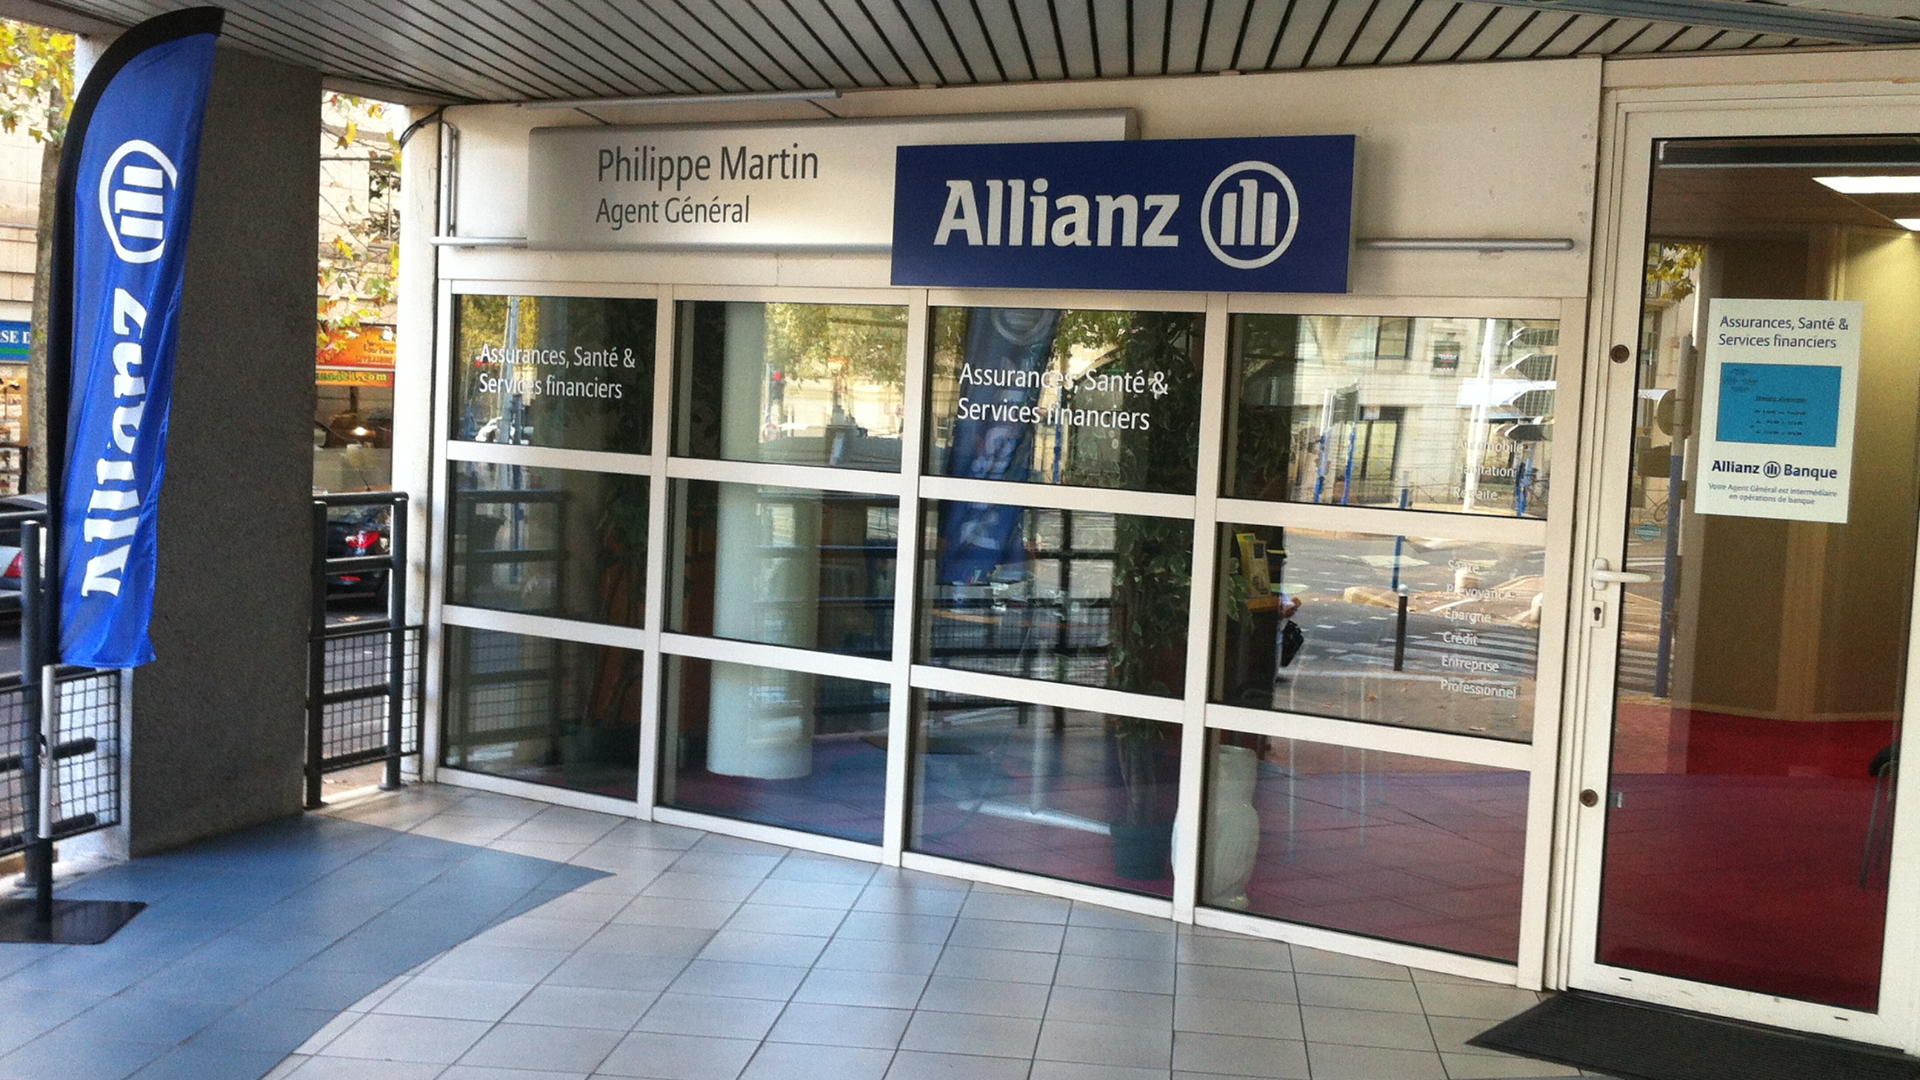 Allianz Montpellier antigone - Philippe MARTIN